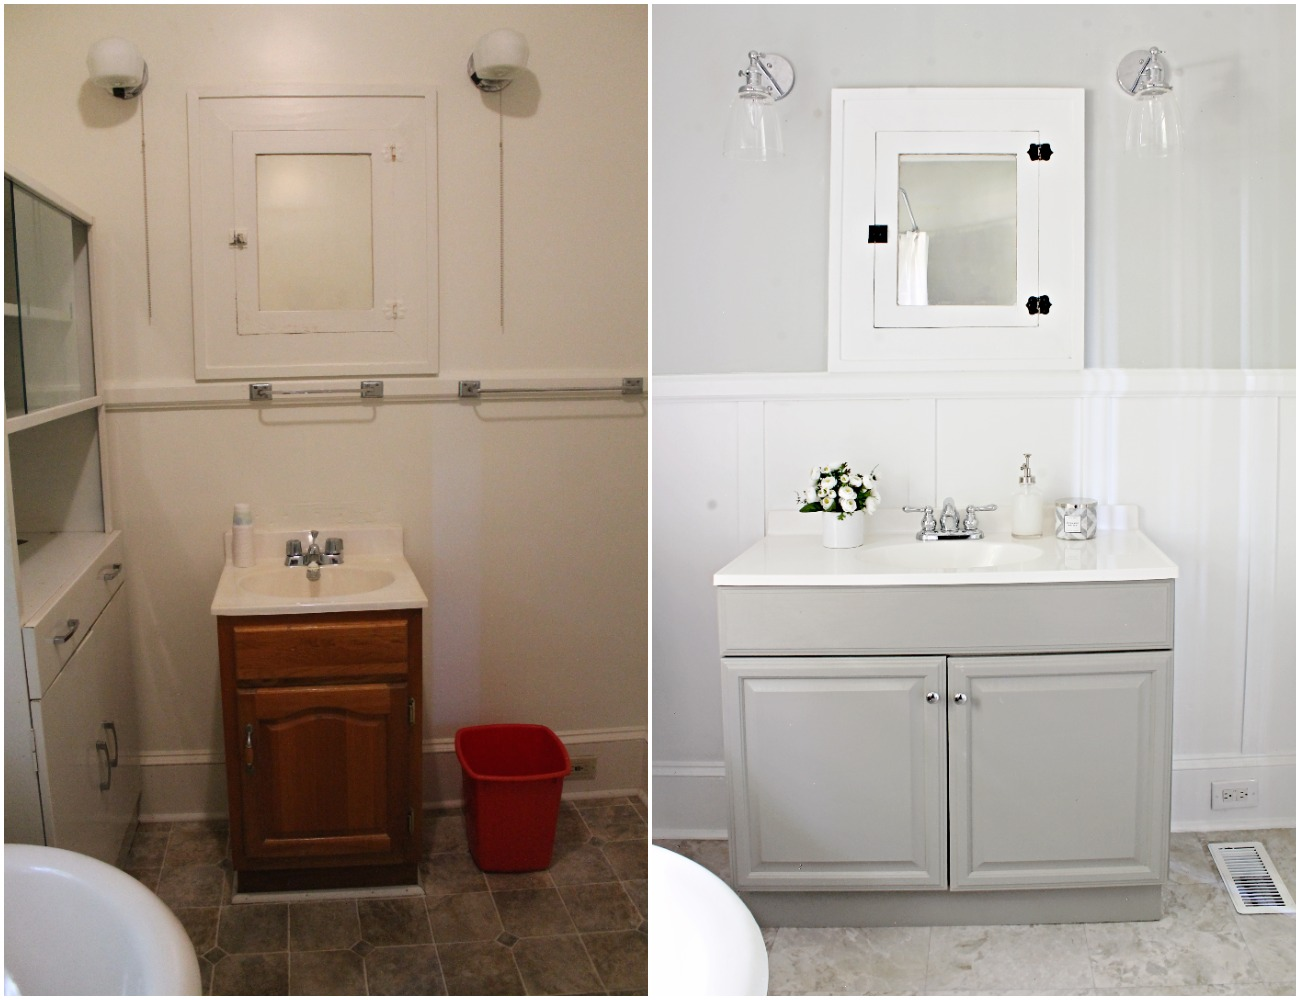 House Flipping Before and After - DIY BUDGET BATHROOM IDEAS (3).jpg